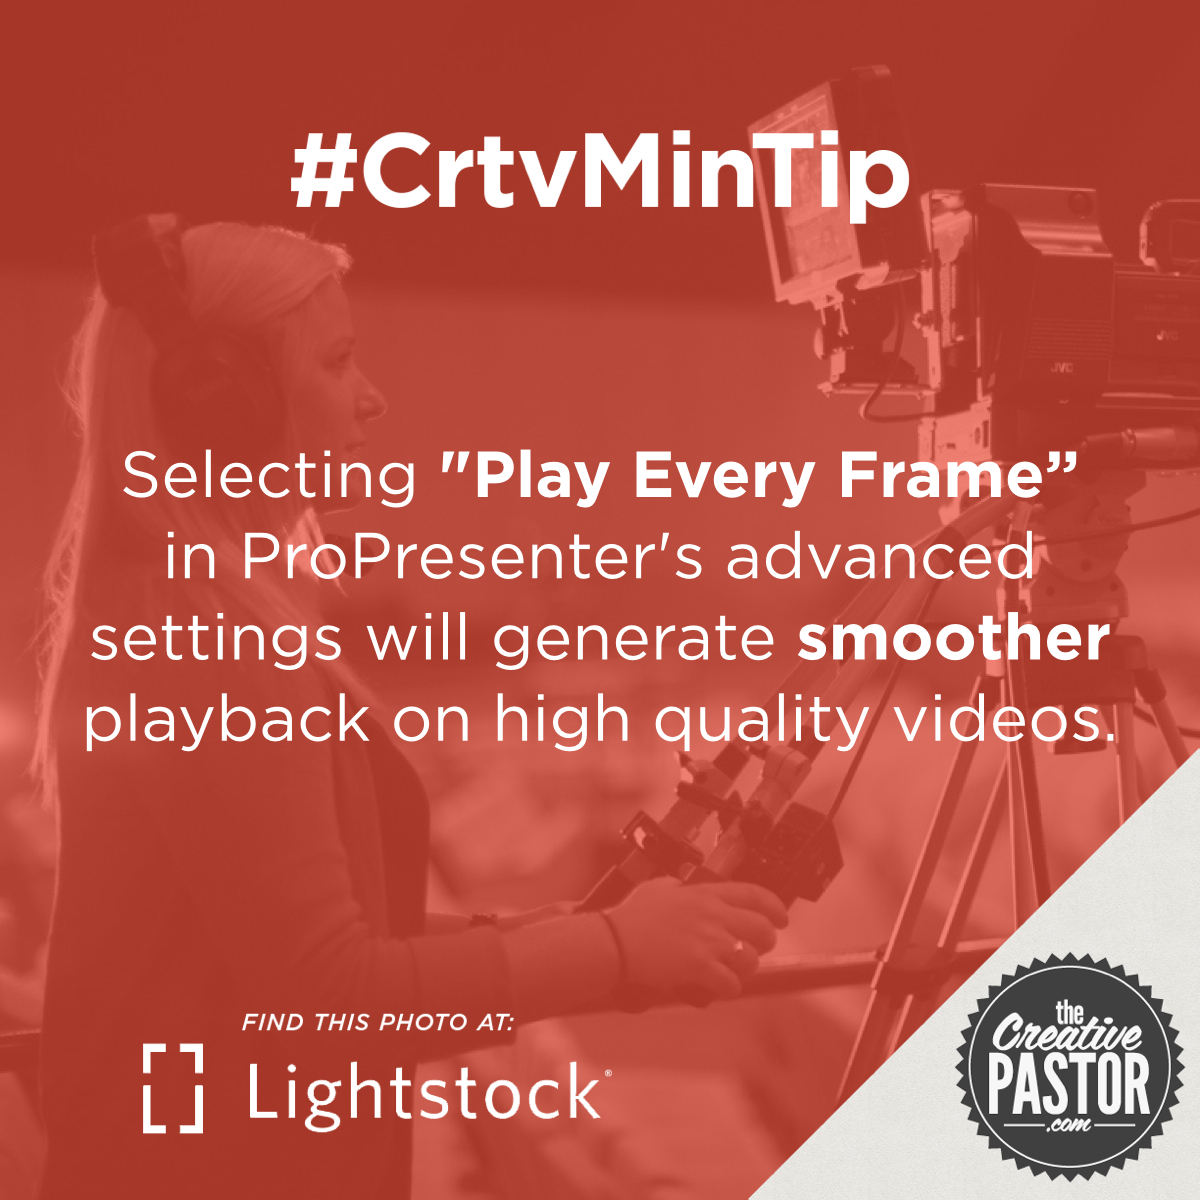 "Selecting ""Play Every Frame"" in ProPresenter's advanced settings will generate smoother playback on high quality videos."